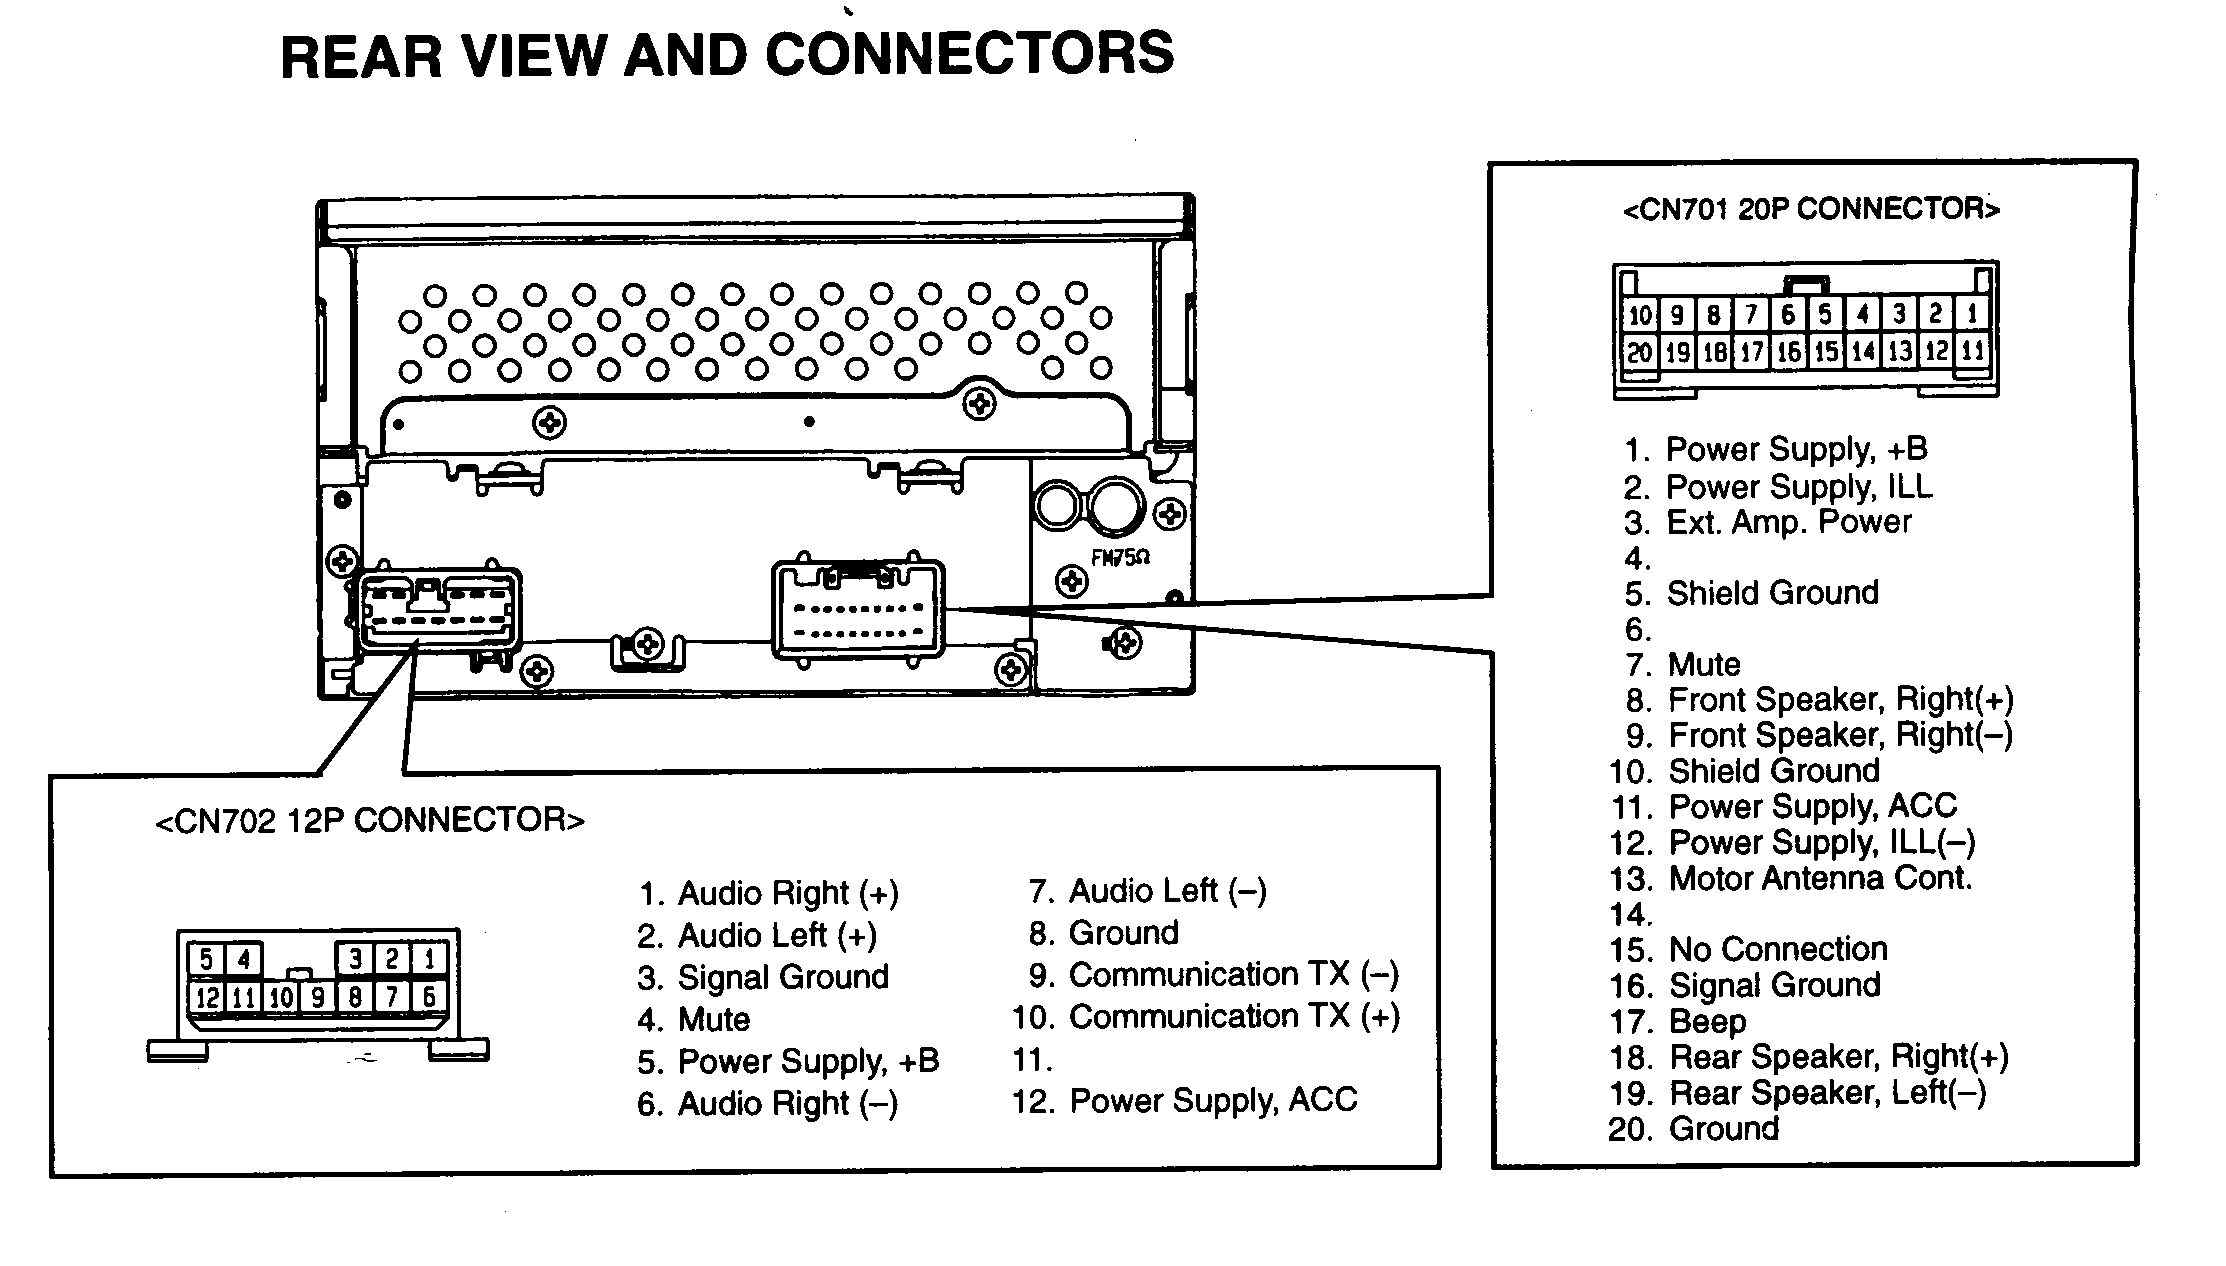 Car Stereo Help - Wire Color Code - Wire Diagrams and Wire Code on car audio installation wiring, car audio equipment, car audio cable, car audio toys, car audio wire, car audio lanyard, car audio lights, car audio kit, car audio relay, car audio horn, car audio control, car audio regulator, car audio switches, car audio fuse, car audio engine, car audio black, car audio adapter, car audio speaker wiring diagram, car audio box, car audio tools,